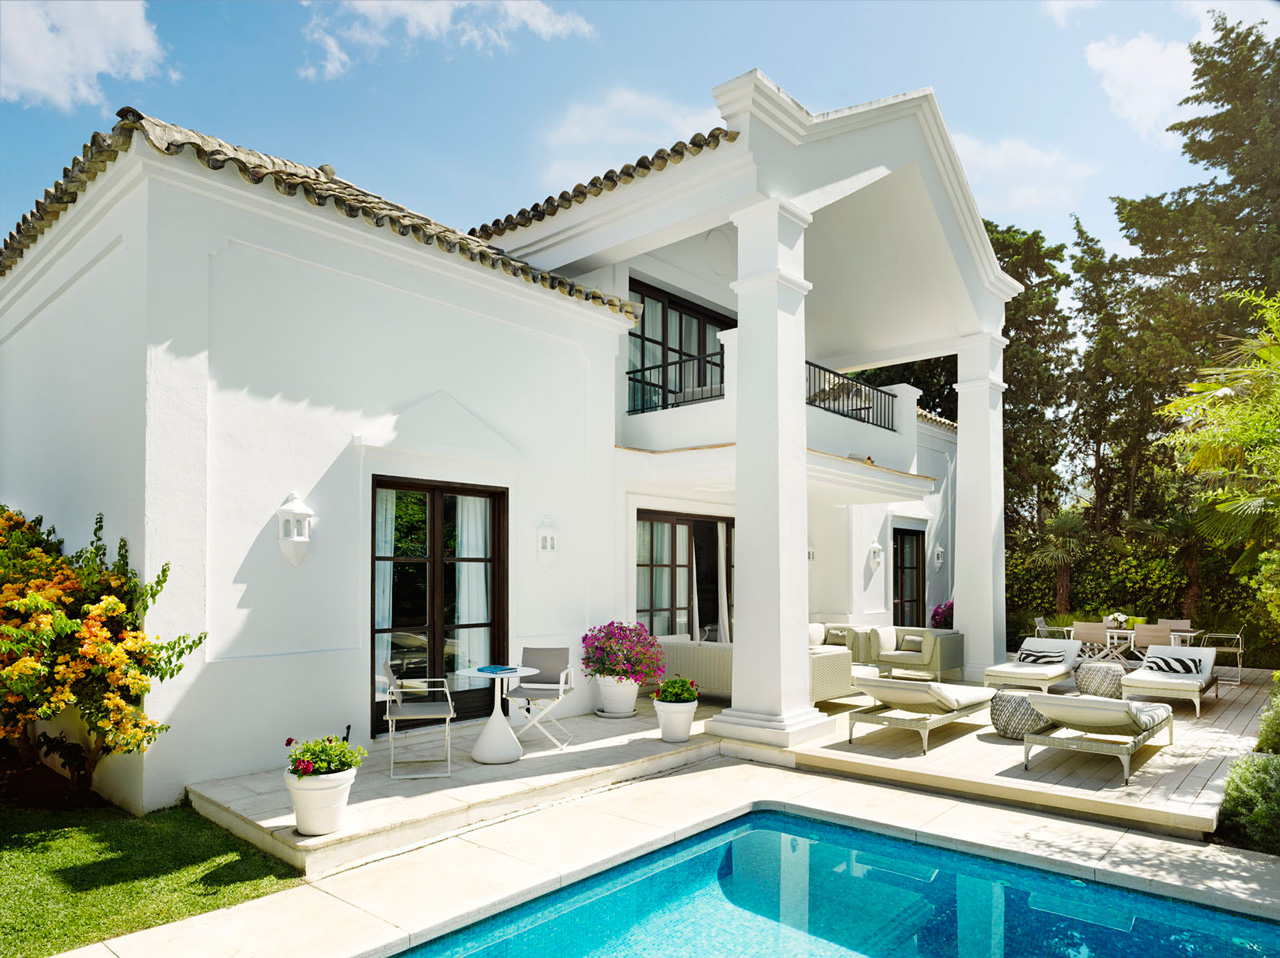 Three Bedrooms Villa, Marbella, Spain